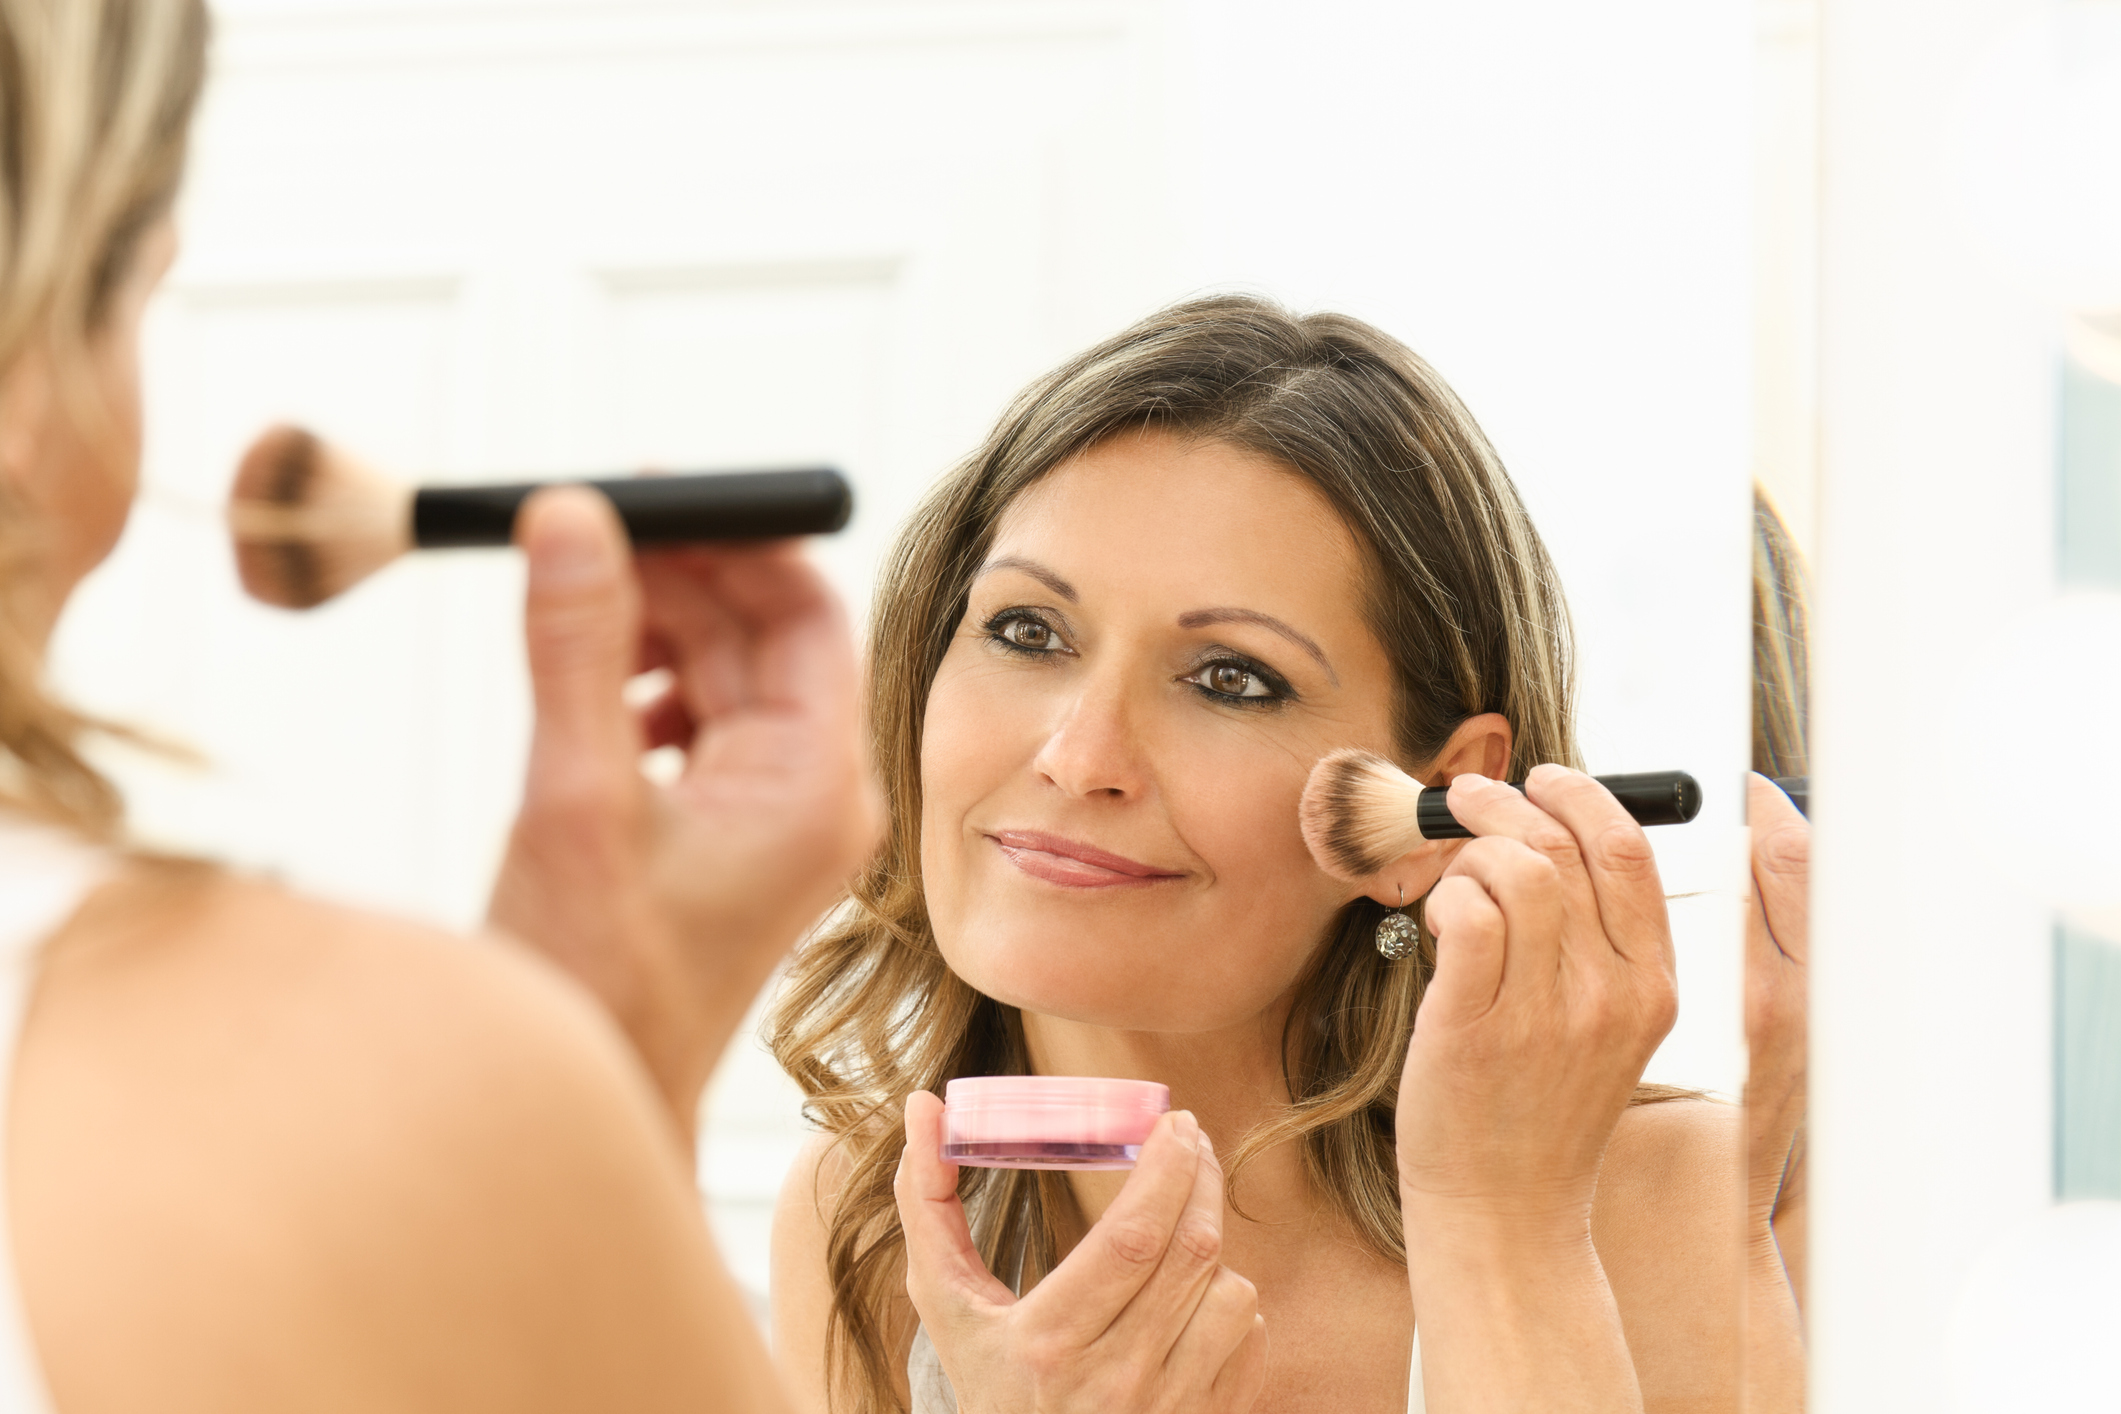 Dangerous 'forever chemicals' are hiding in your cosmetics